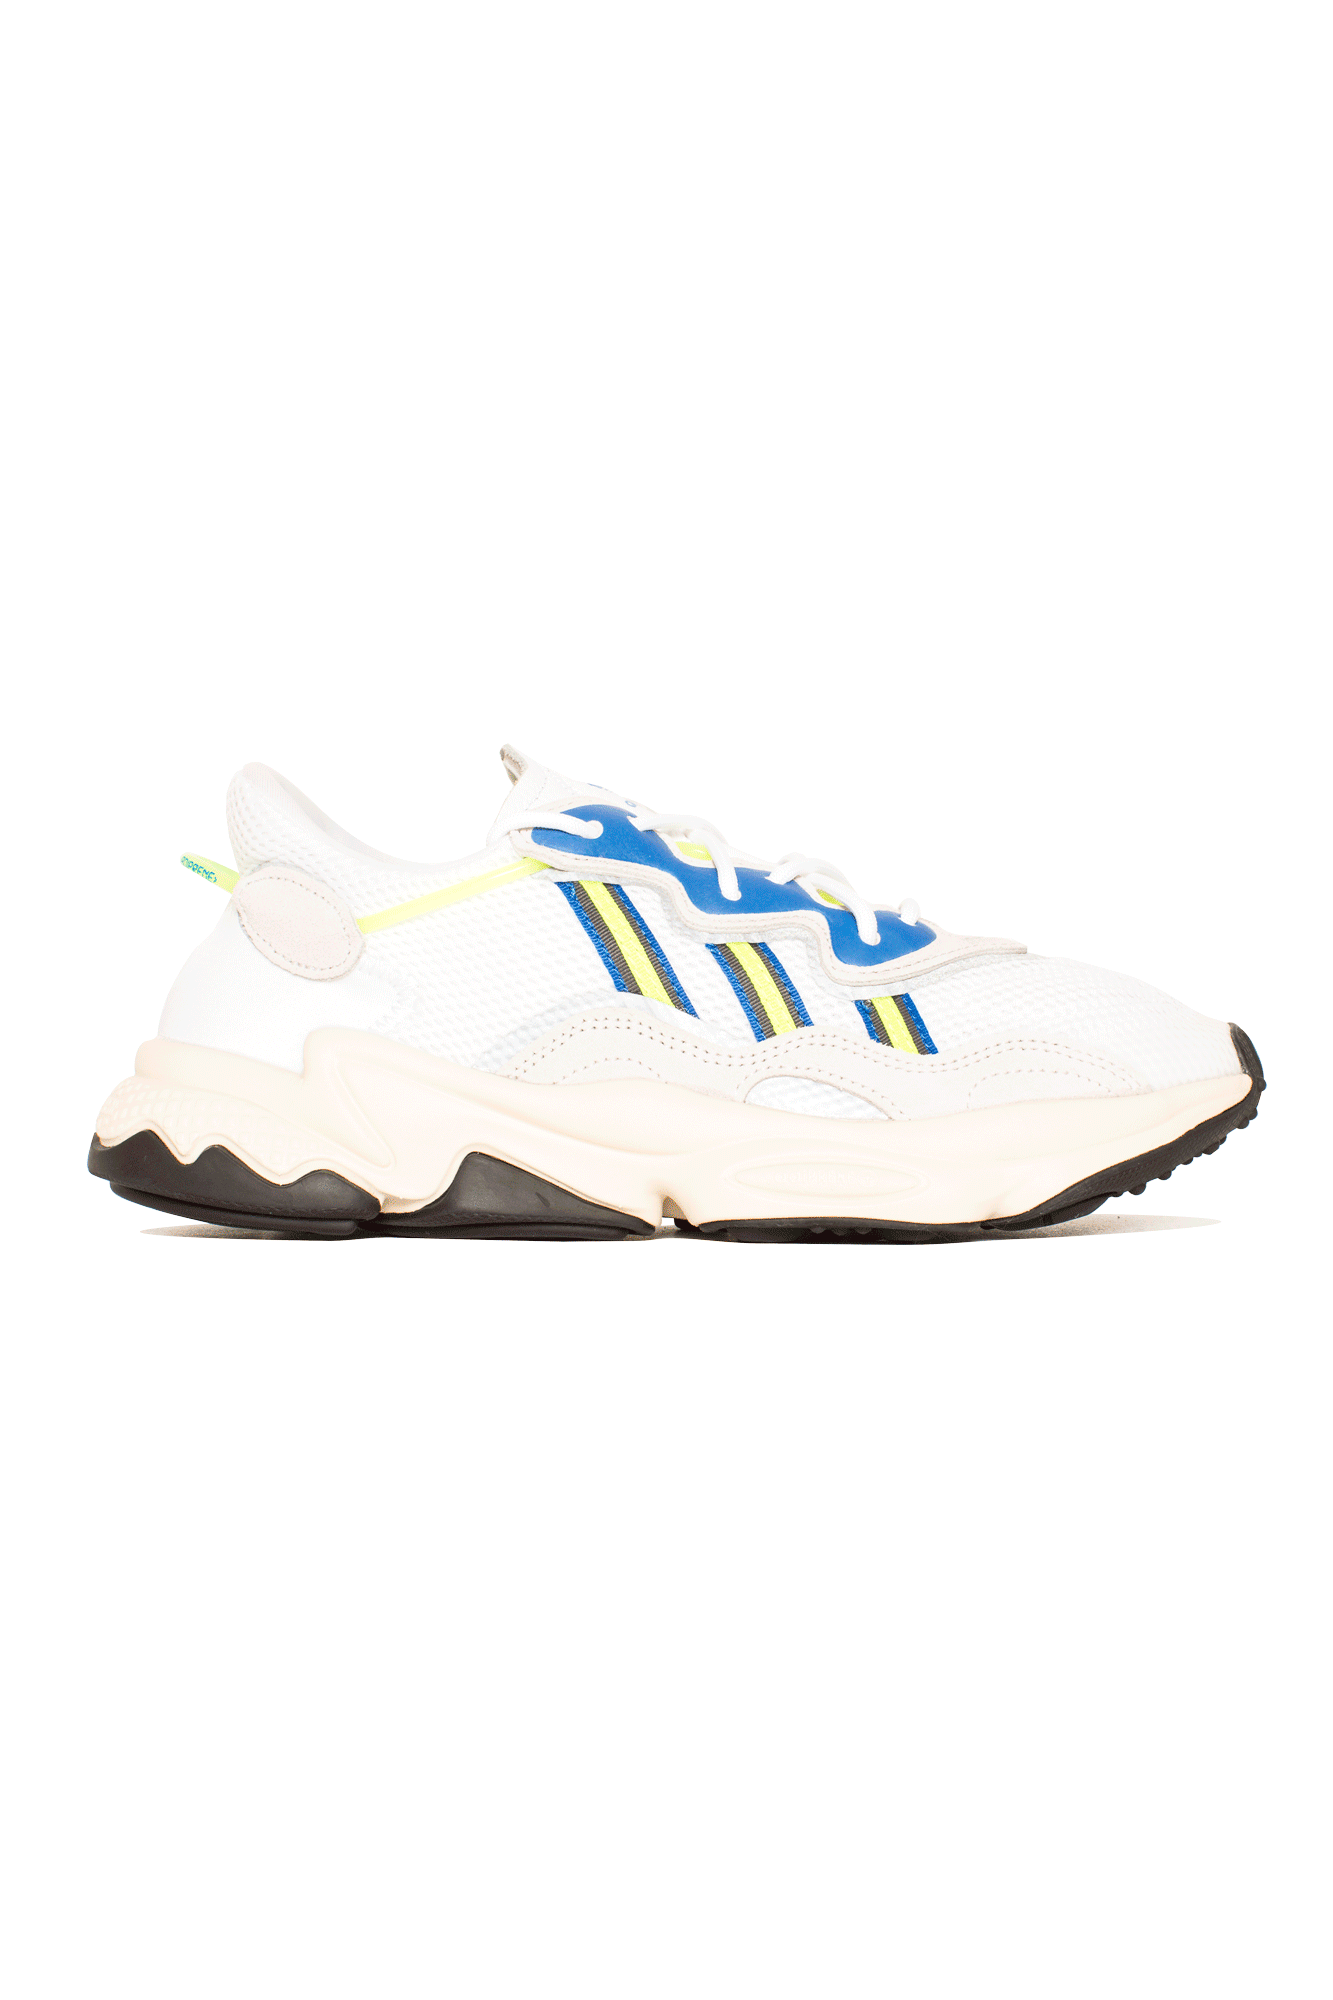 Adidas Originals Sneakers Ozweego White EE7009#000#C0006#5,5 - One Block Down